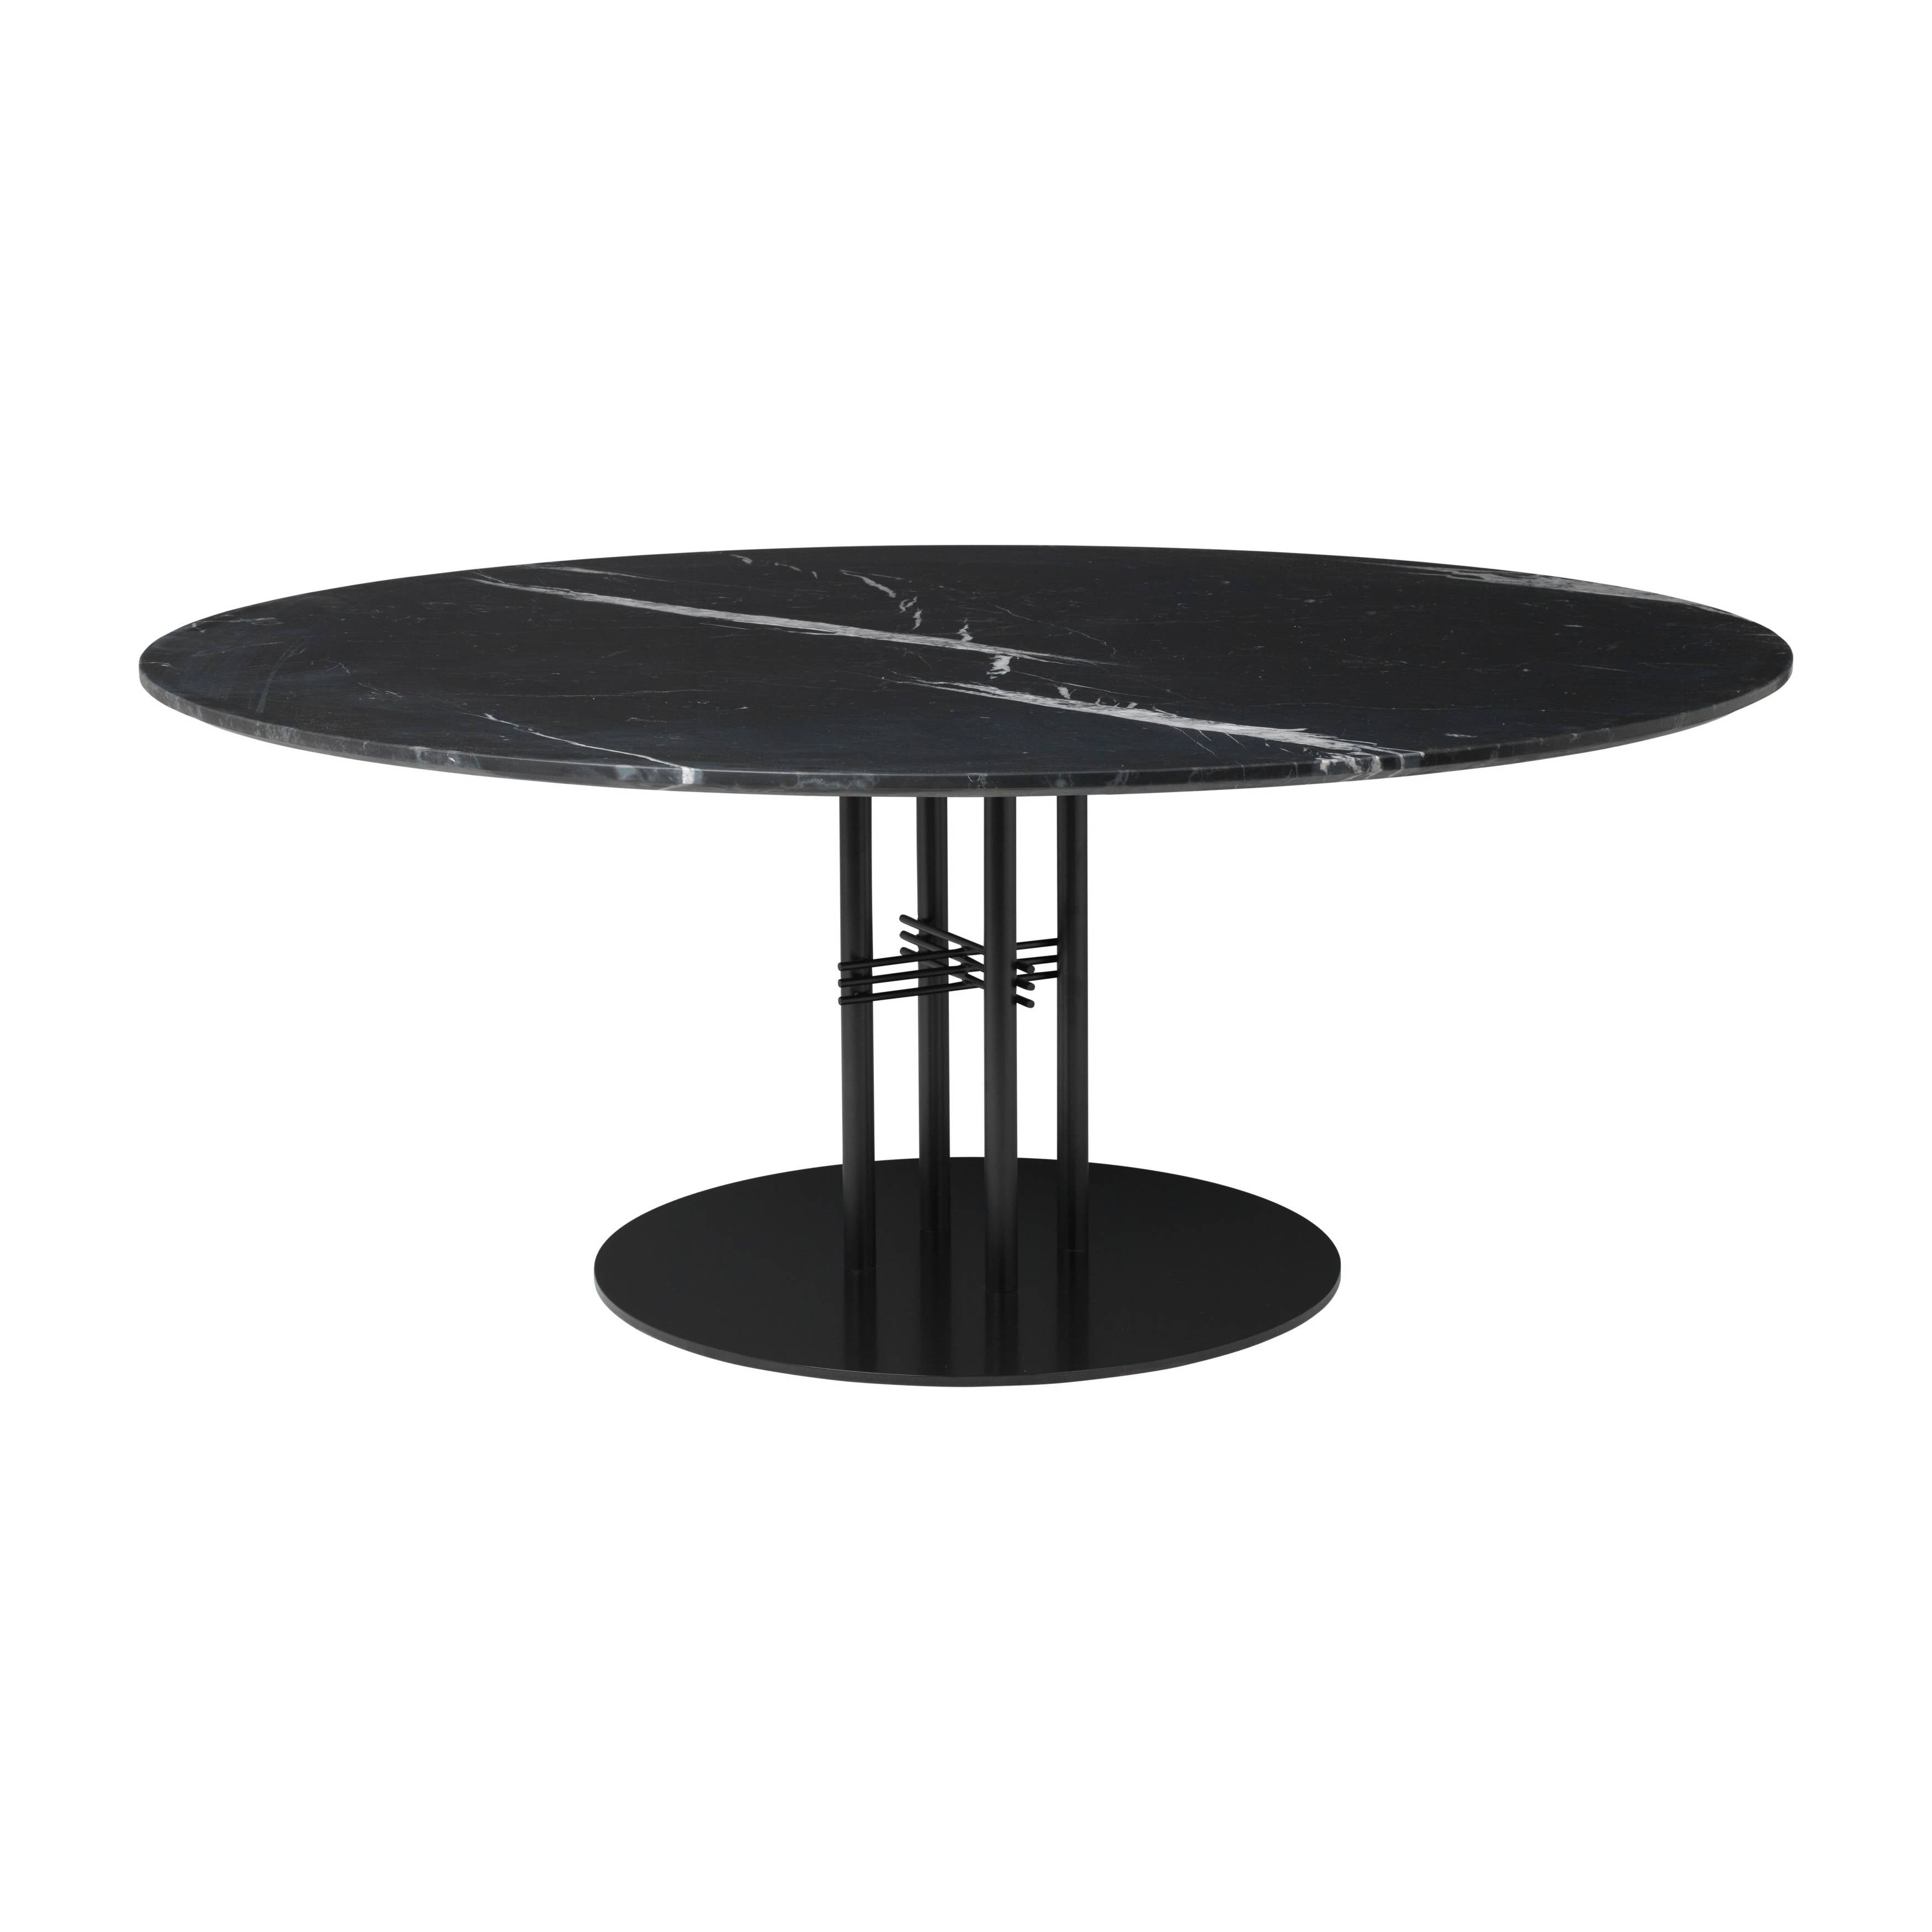 TS Column Lounge Table: Extra Large + Black Base + Black Marquina Marble